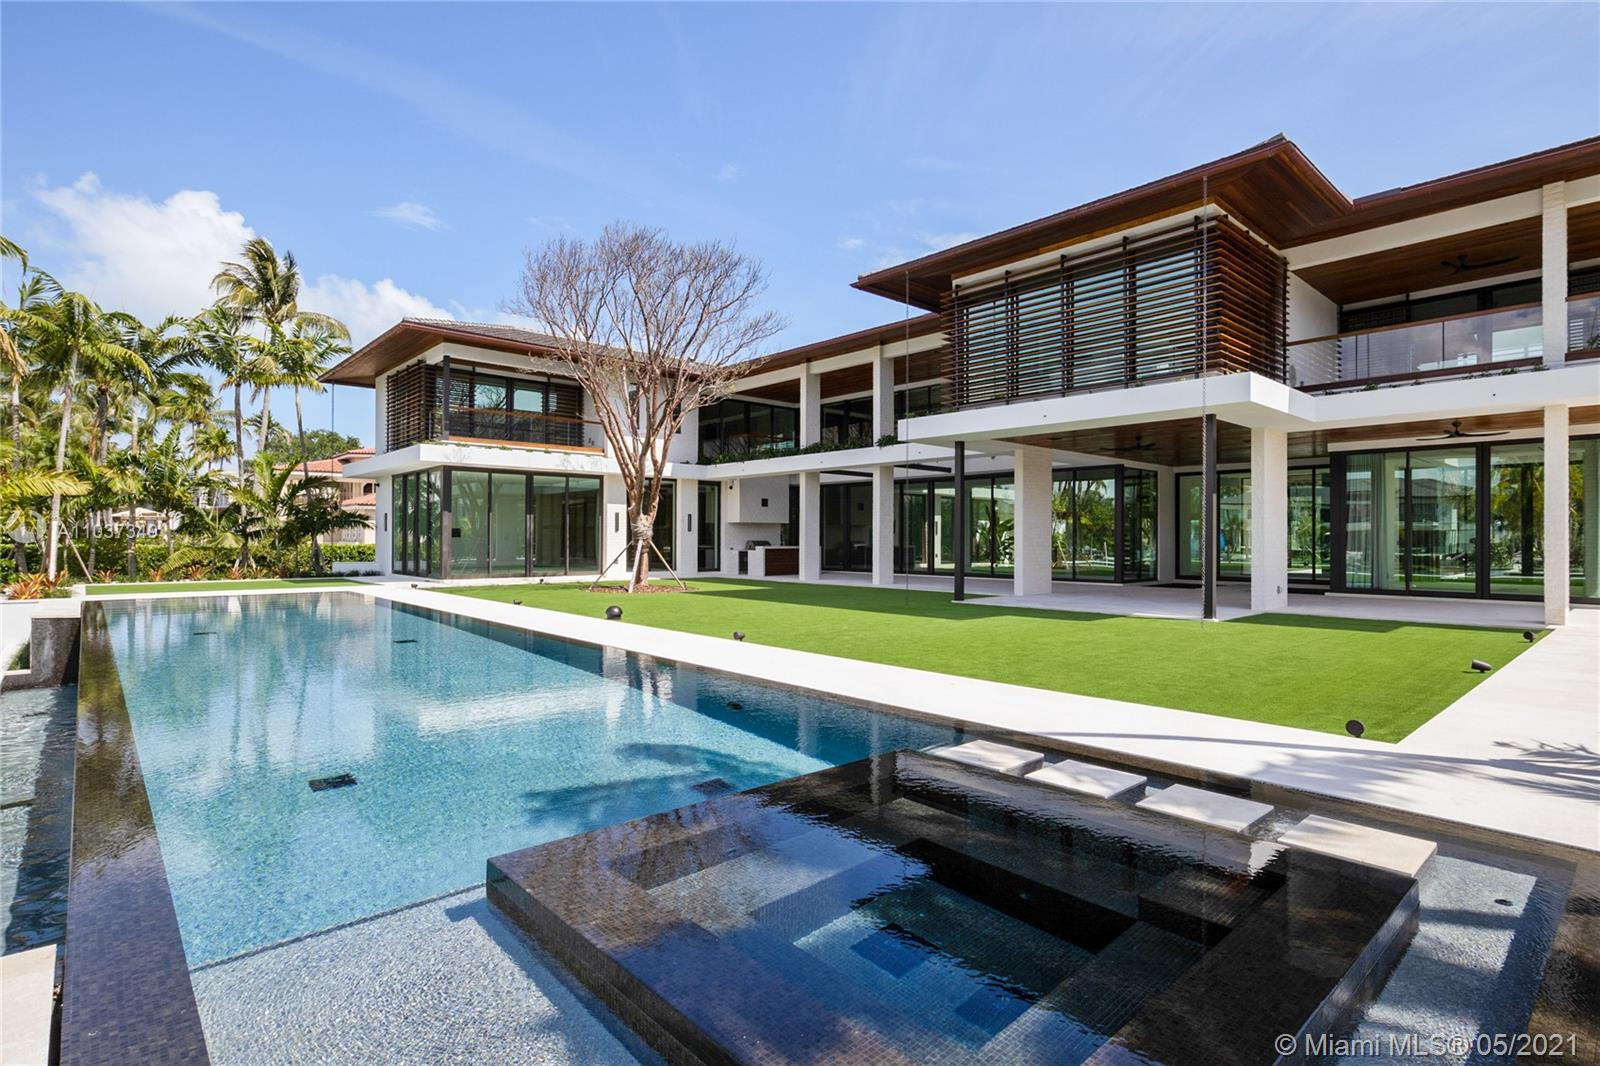 """Immediate Occupancy, Only New Construction in Coveted Gables Estates; Cesar Molina Design """"Tropical Mid-Century Modern Style"""" w/ 360 Water views; Near 1 Acre Corner lot w/ New Dock +direct shot to Ocean-No Bridges-to-Bay! 8,800 Int.SF+3700SF covered exterior spaces; 24'Hi-living rm. ceiling+ 1st floor 12'Hi ceiling; 6BR,6Bth+Nanny Rm, Gym, Media Rm+2-1/2 Bths, All top-line finishes; Cumaroo wood exteriors; Walnut Custom Kitchen cabinets, closets & doors; Quartzite Supreme Kitchen Countertops; Summer Kitchen; Laundry room; Hurricane proof sliding glass doors/windows; Shell reef ground & exterior floors; Rami stone walls; Glass railings stairs & balconies; Elevator; Electric blackout shades, Lutron lighting, Sonos Audio System, Luma Security System, Automated Gates, & Savant System"""